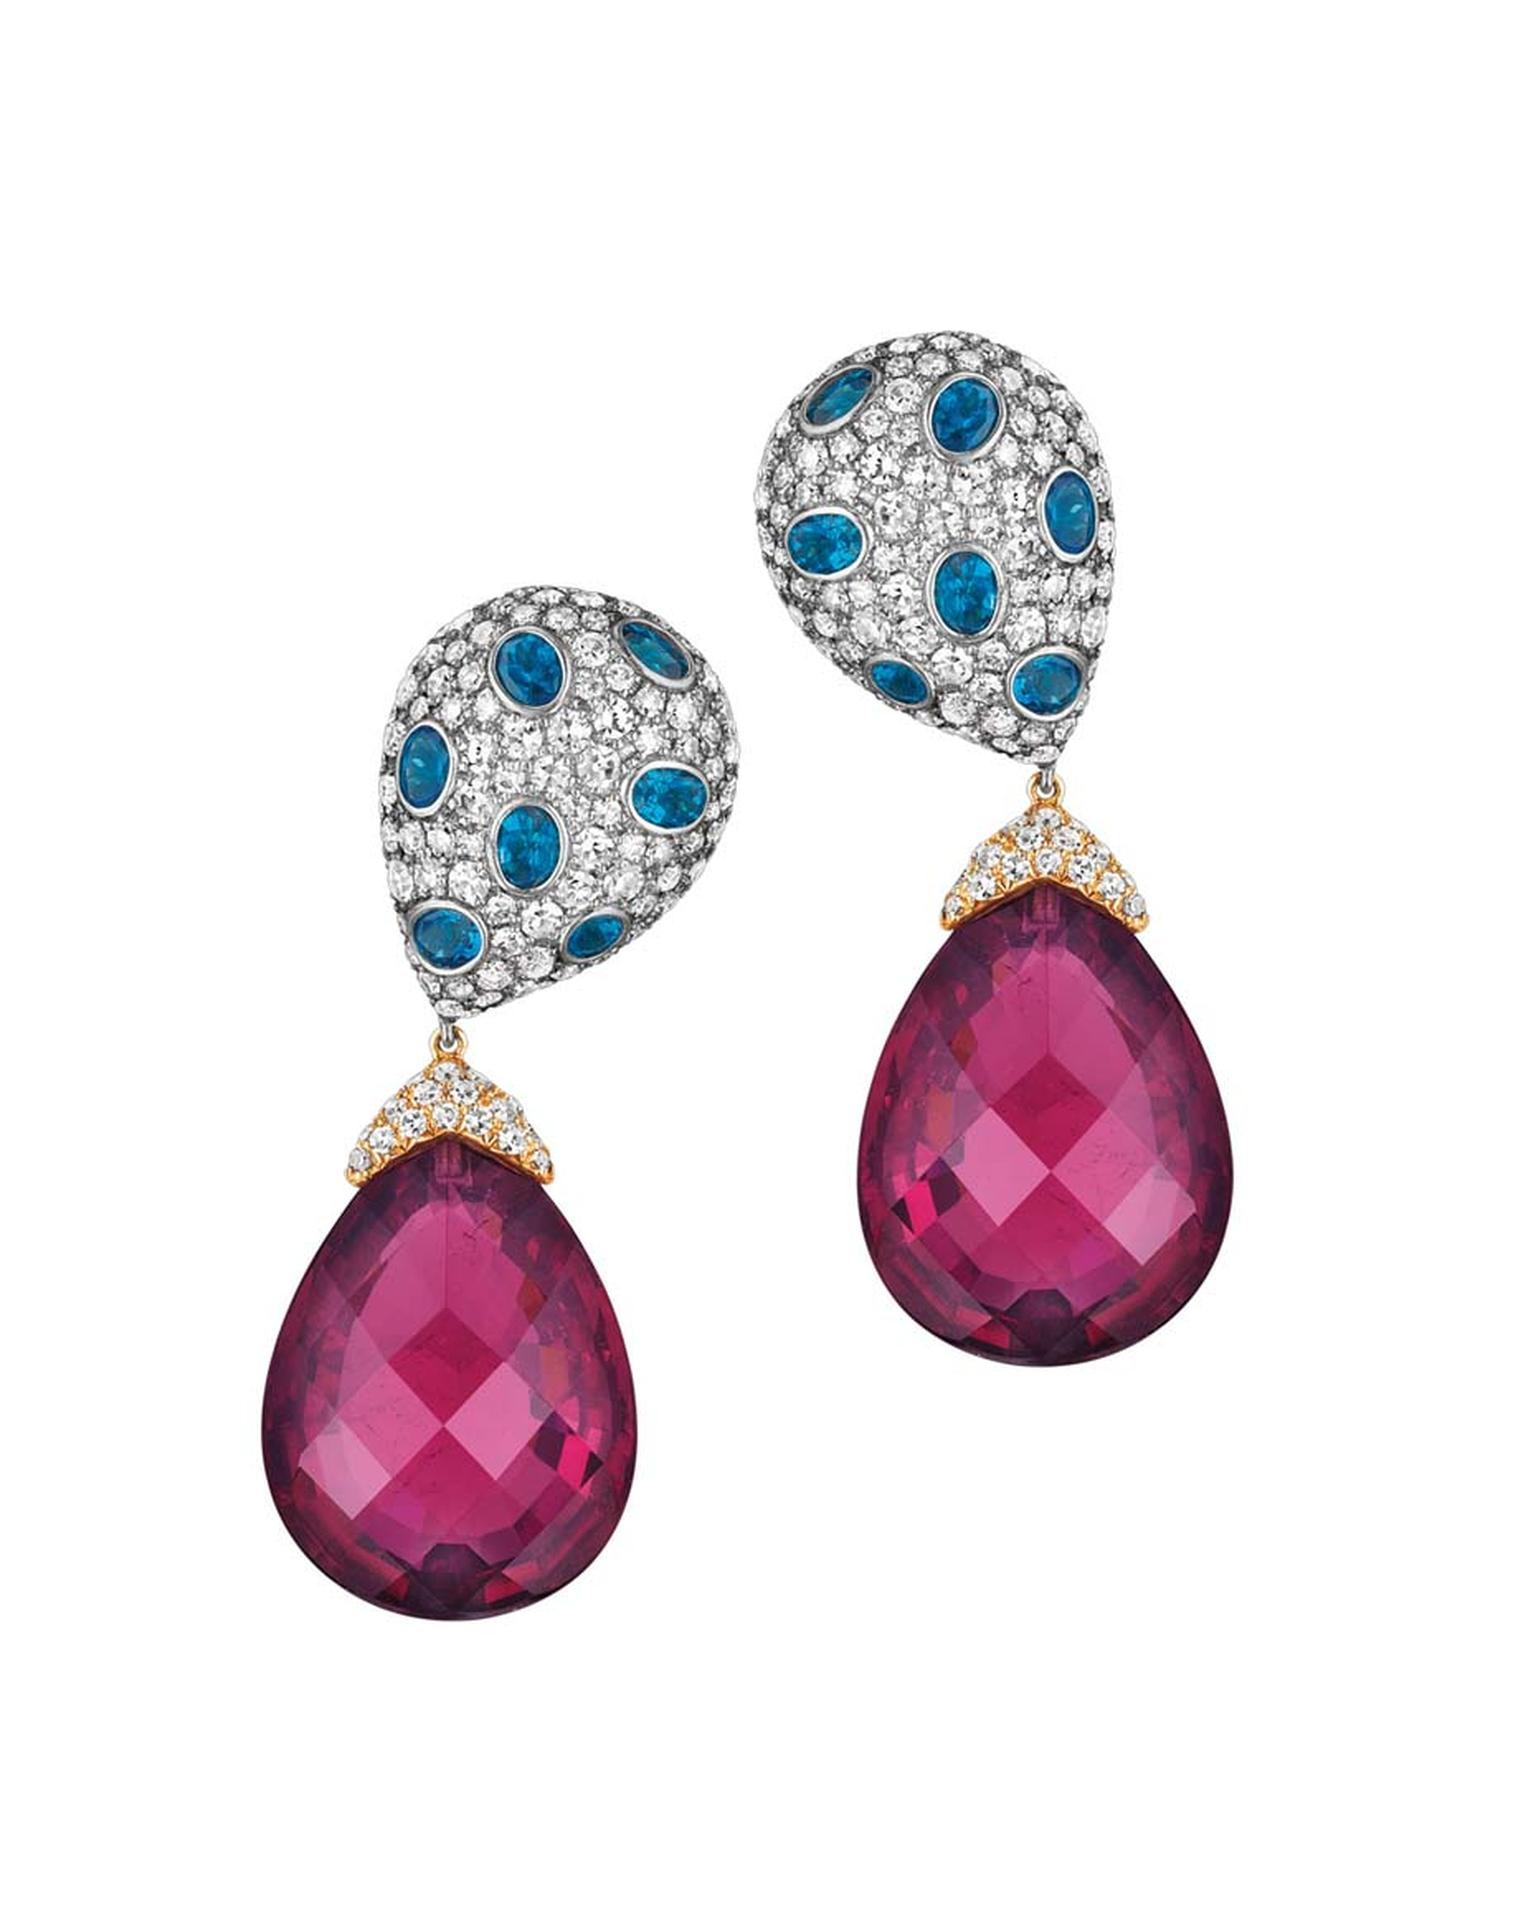 Jacob & Co. Harlequin earrings in white gold set with 83.81ct rubellites, apatite and diamonds